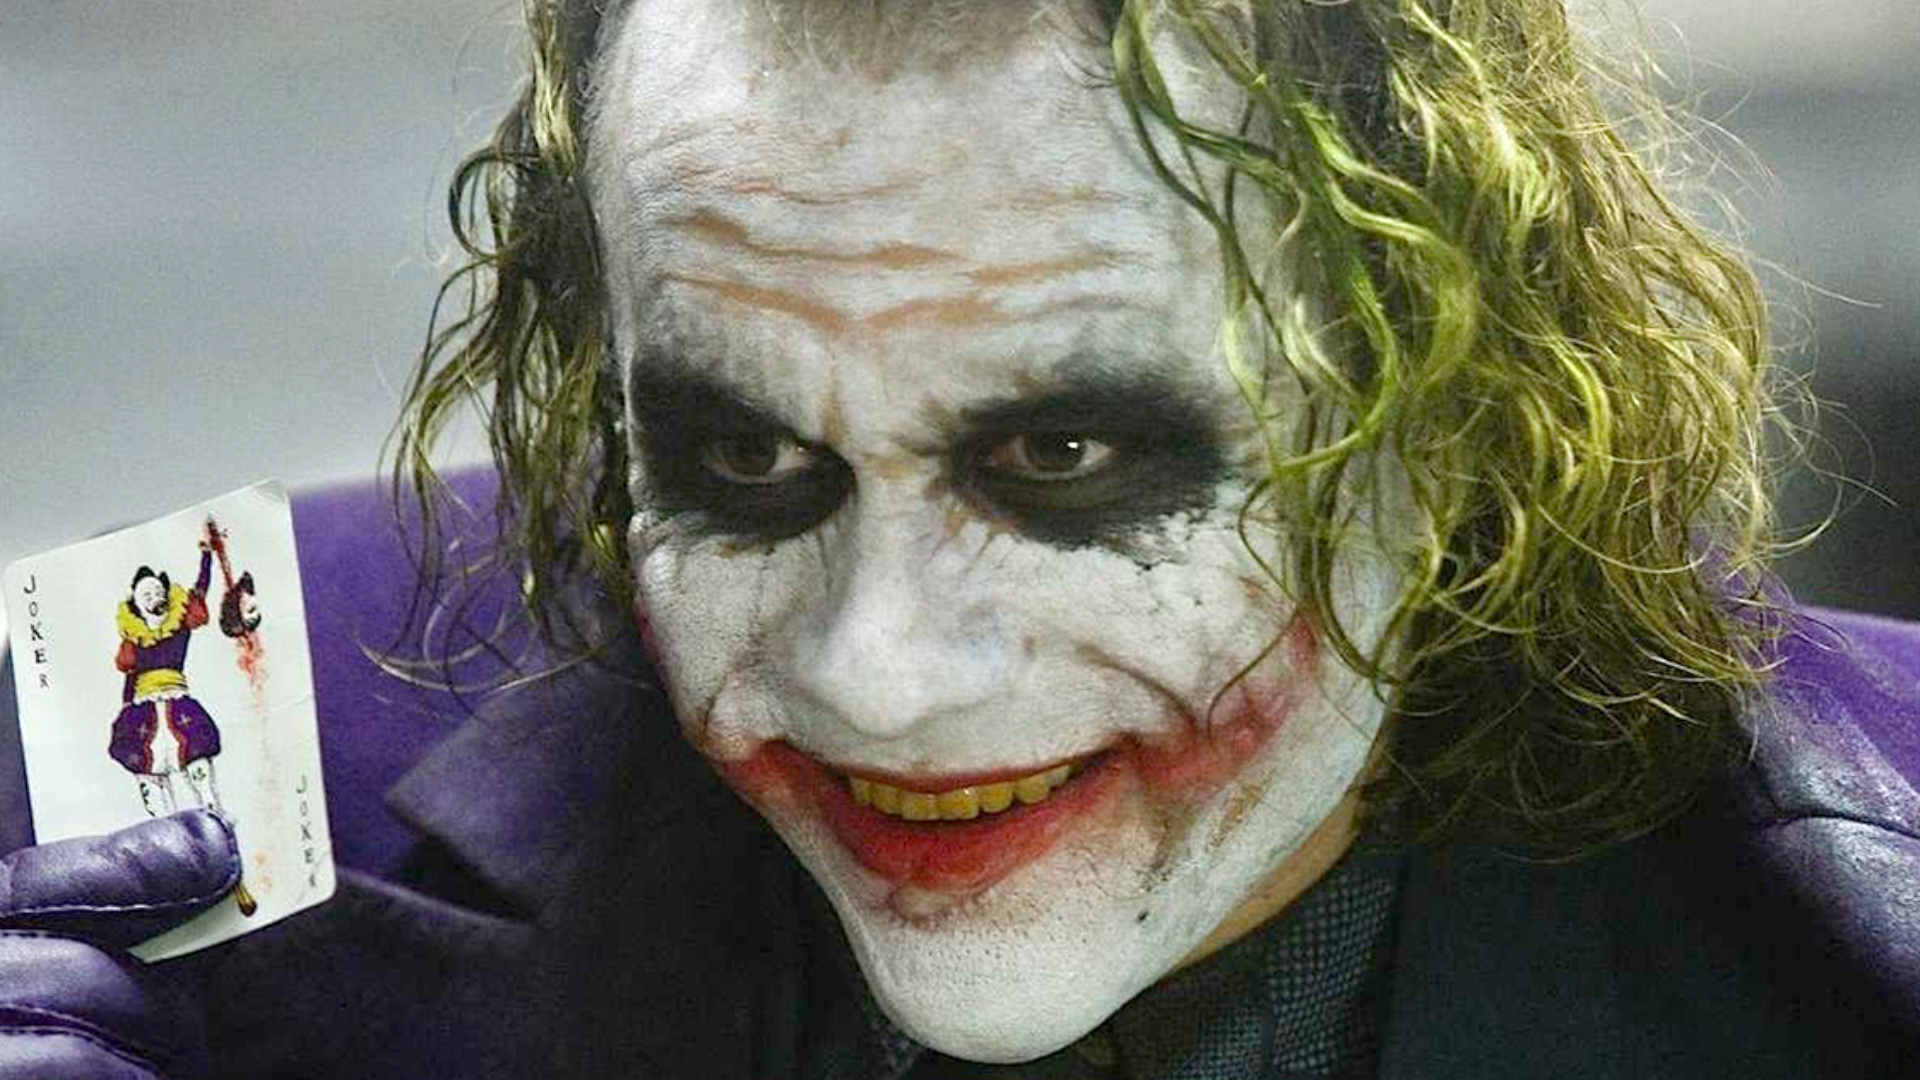 The most terrifying villains in movie history